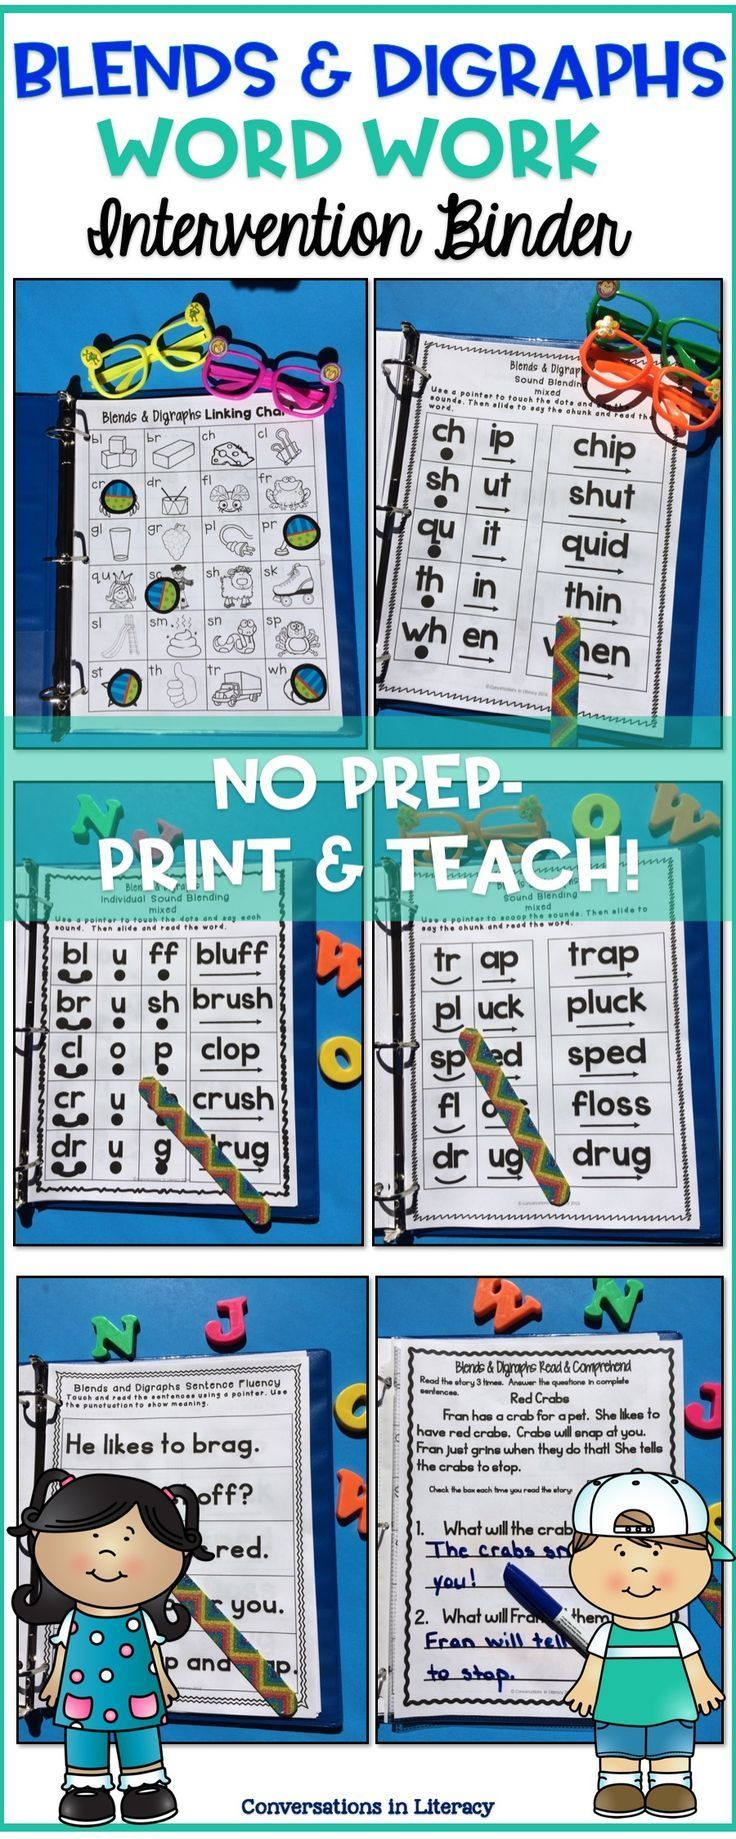 Blends and Digraphs activities for reading interventions, guided reading groups or literacy centers!